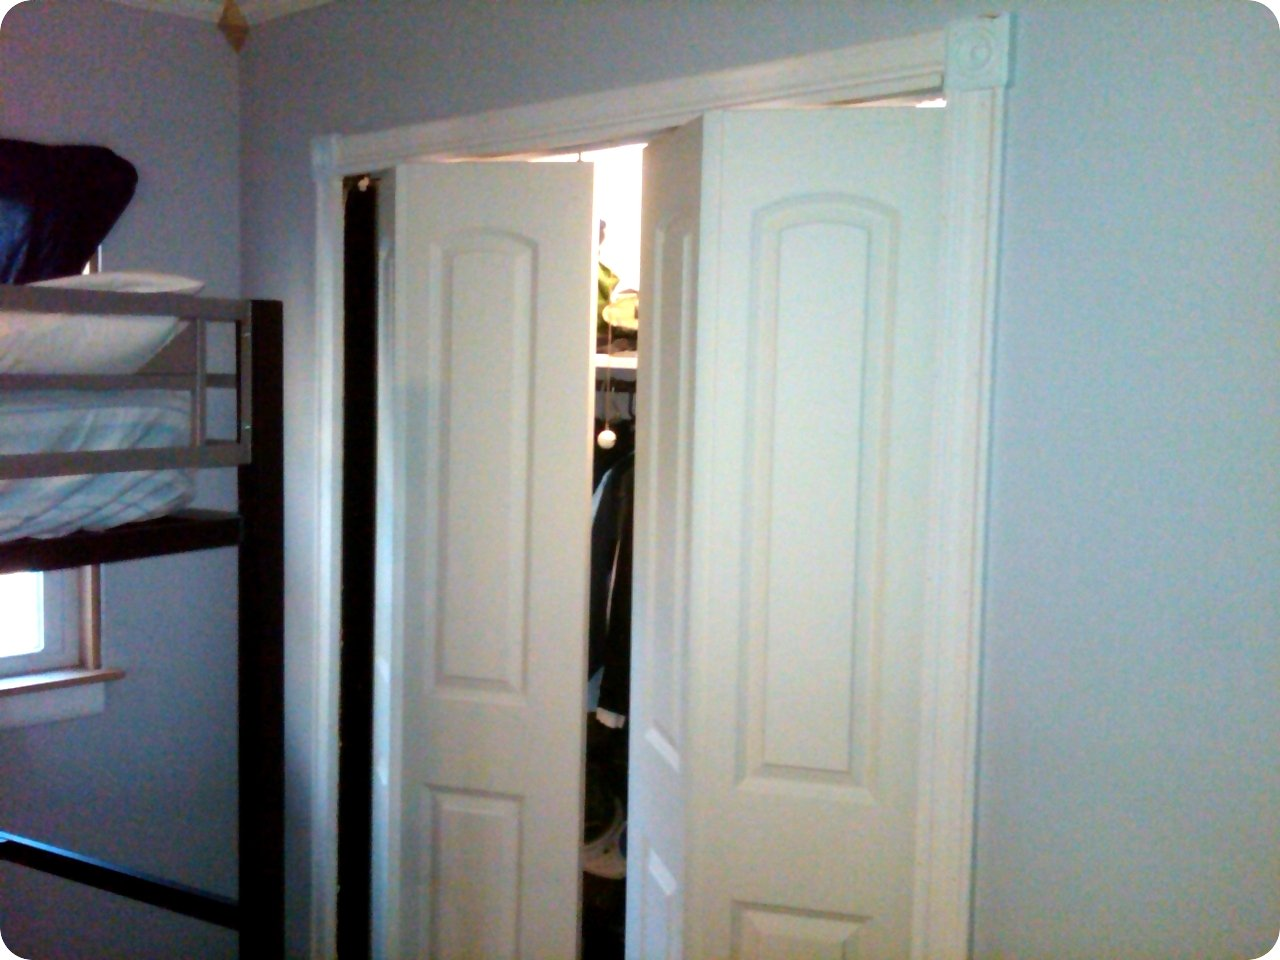 White Folding Closet Doors On Blue Wall With Loft Bed